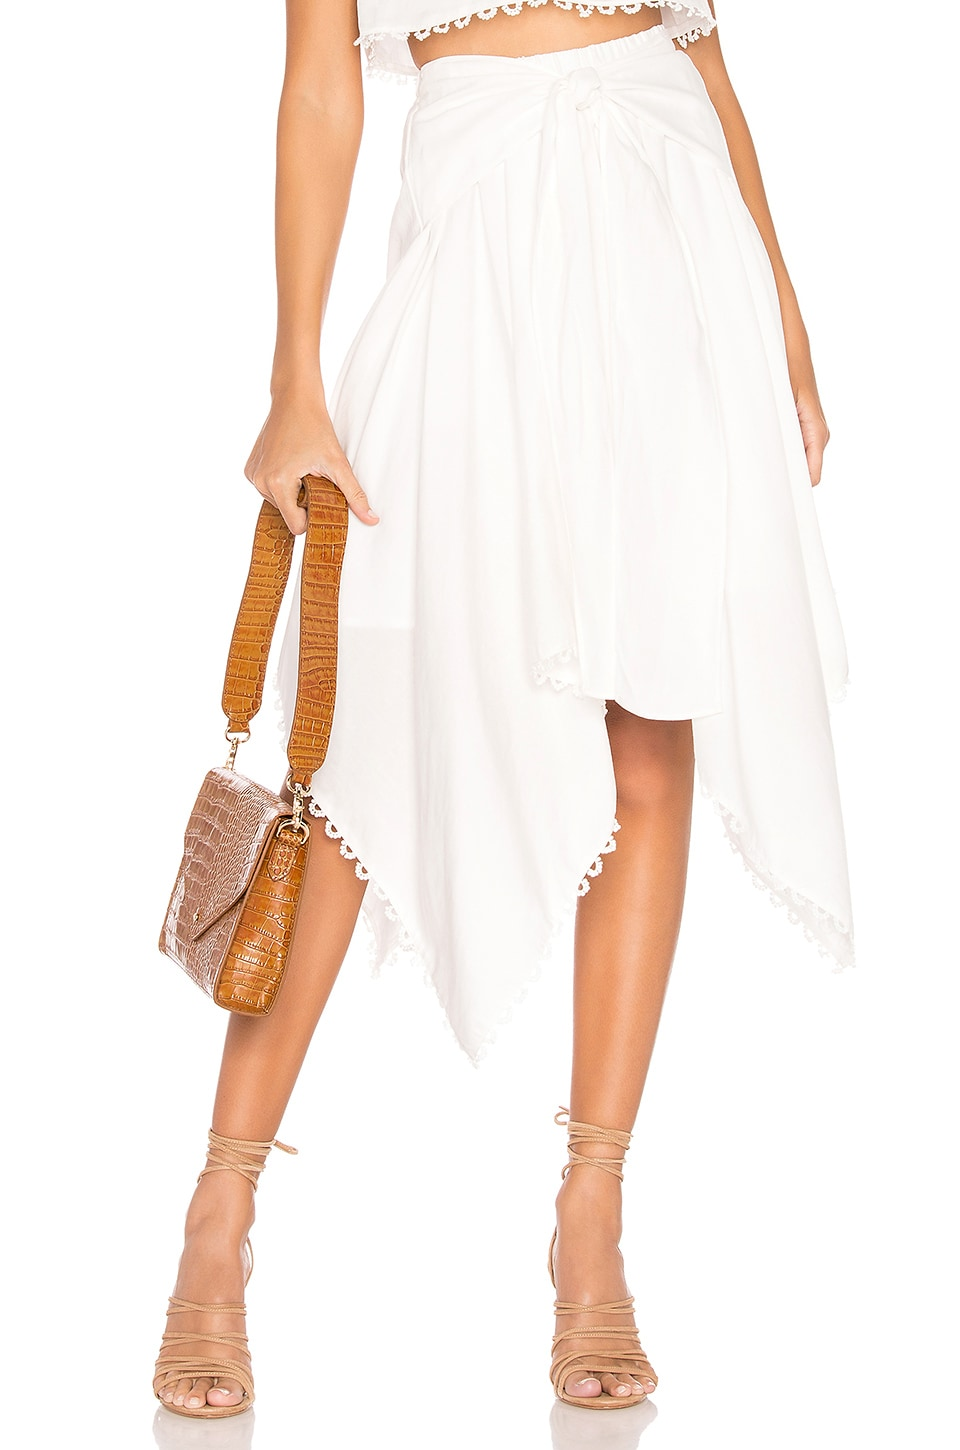 House of Harlow 1960 x REVOLVE Camille Skirt in White